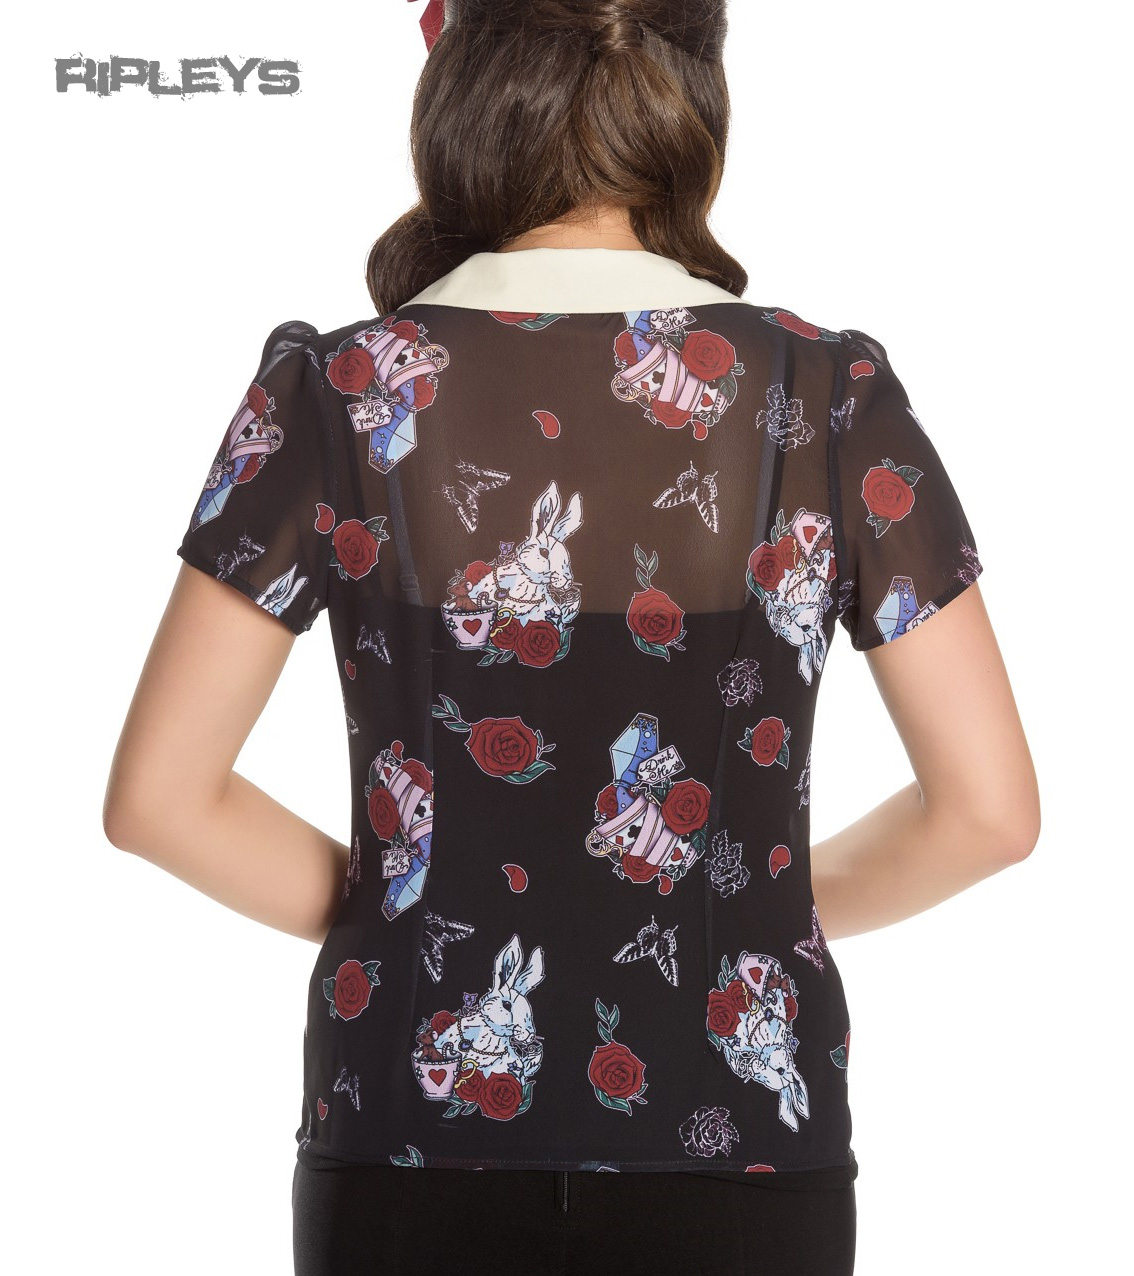 Hell-Bunny-Shirt-Top-Alice-in-Wonderland-Blouse-DRINK-ME-Roses-All-Sizes